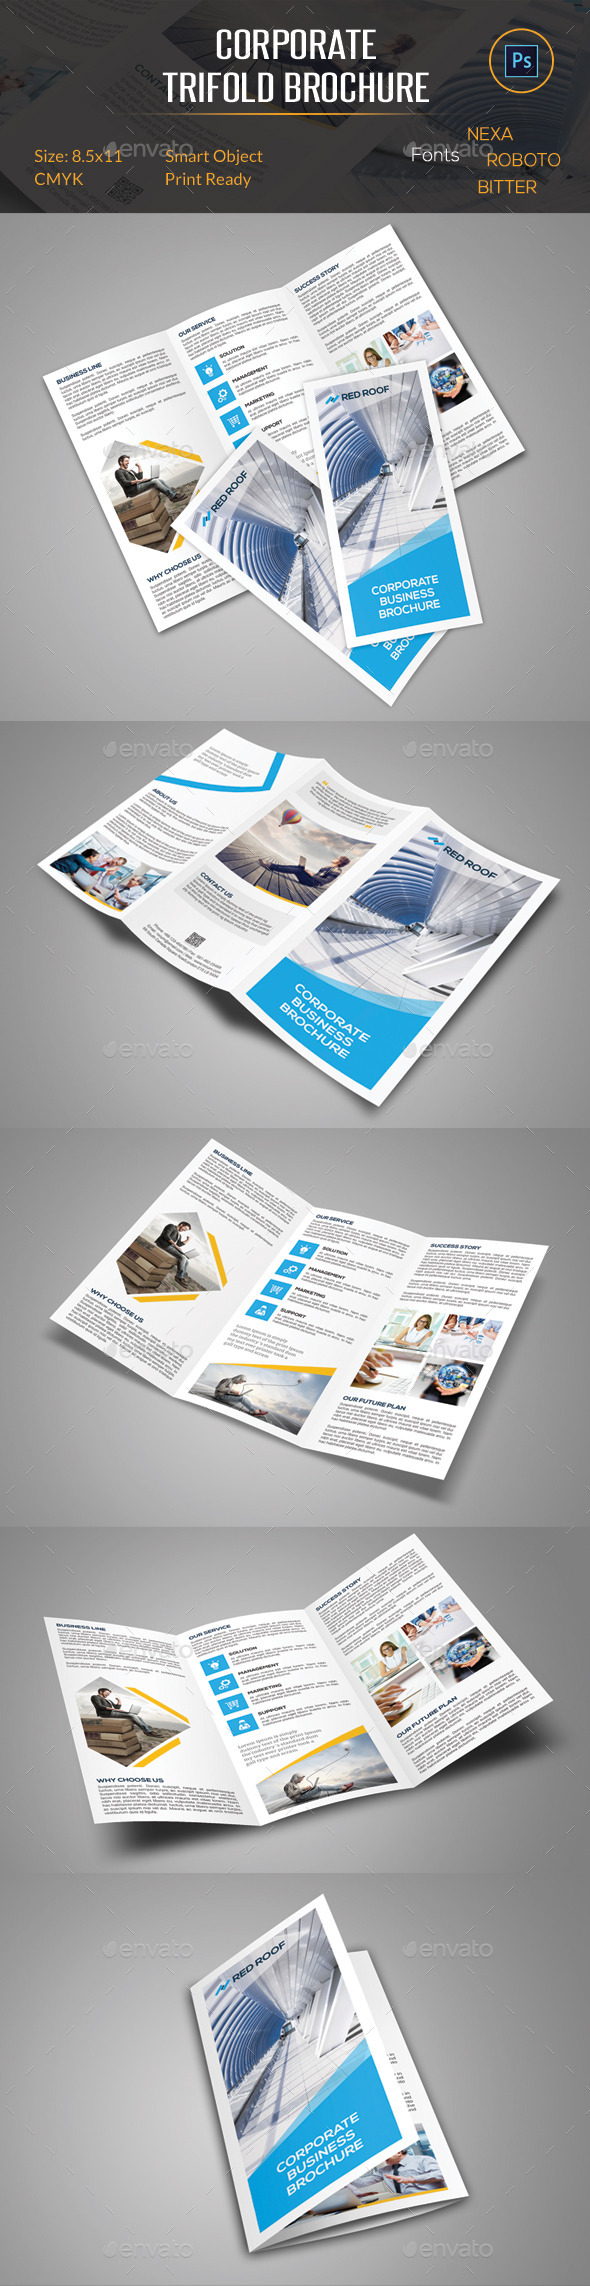 GraphicRiver Corporate Trifold Brochure 10564466